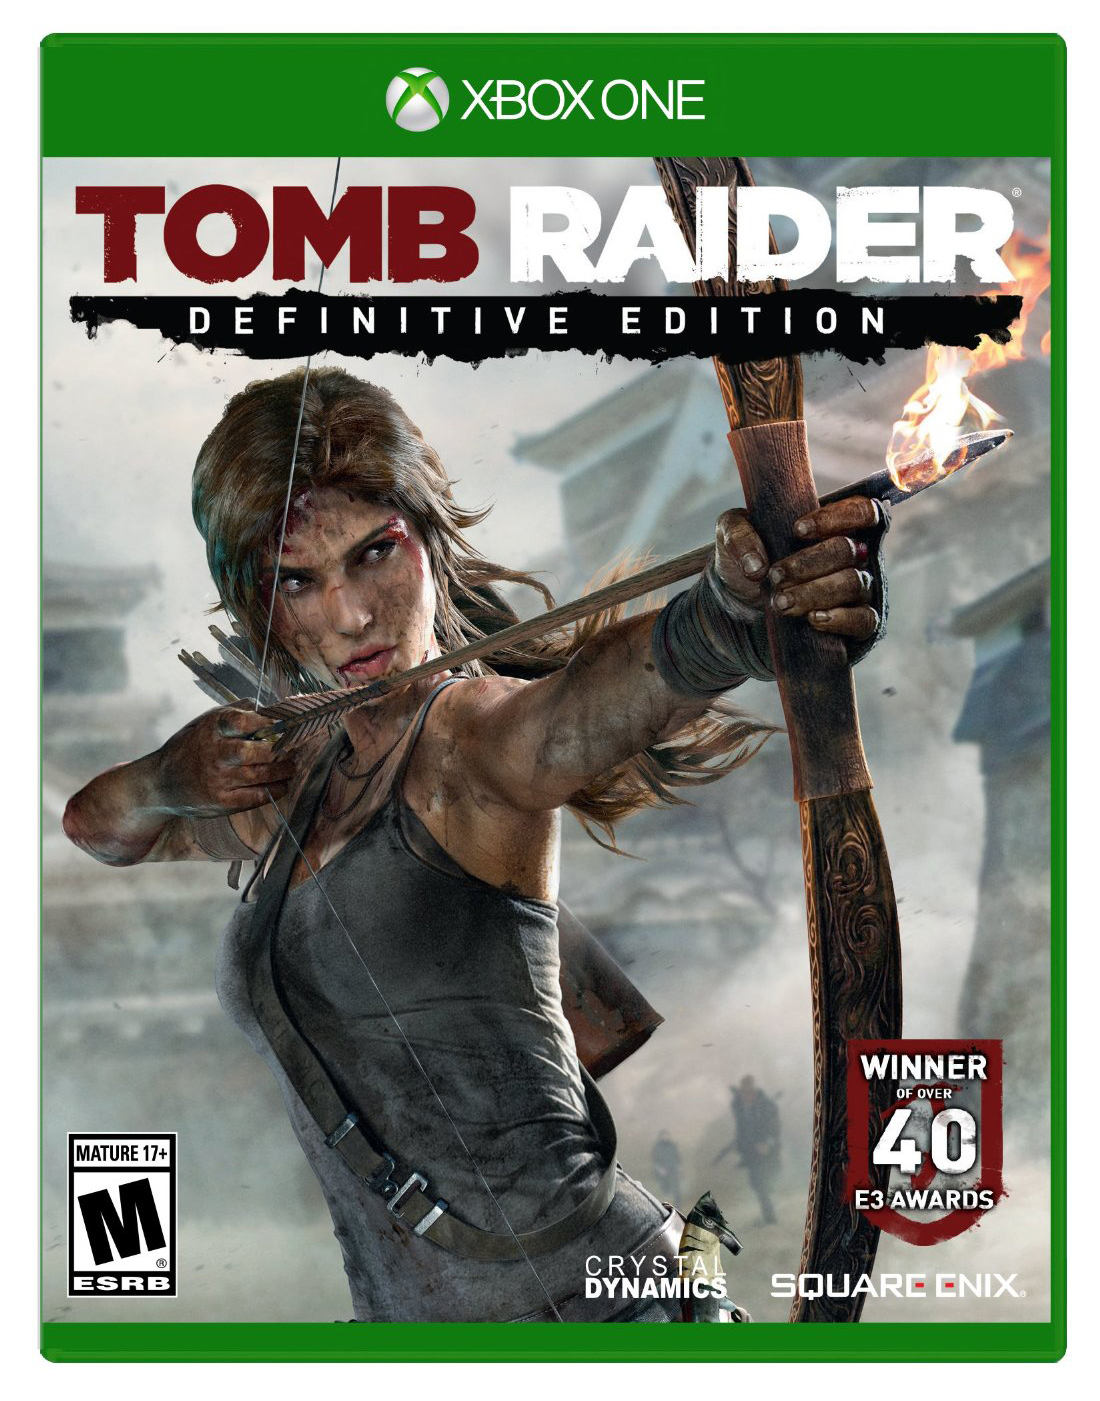 tomb-raider-definitive-edition-xbox-one